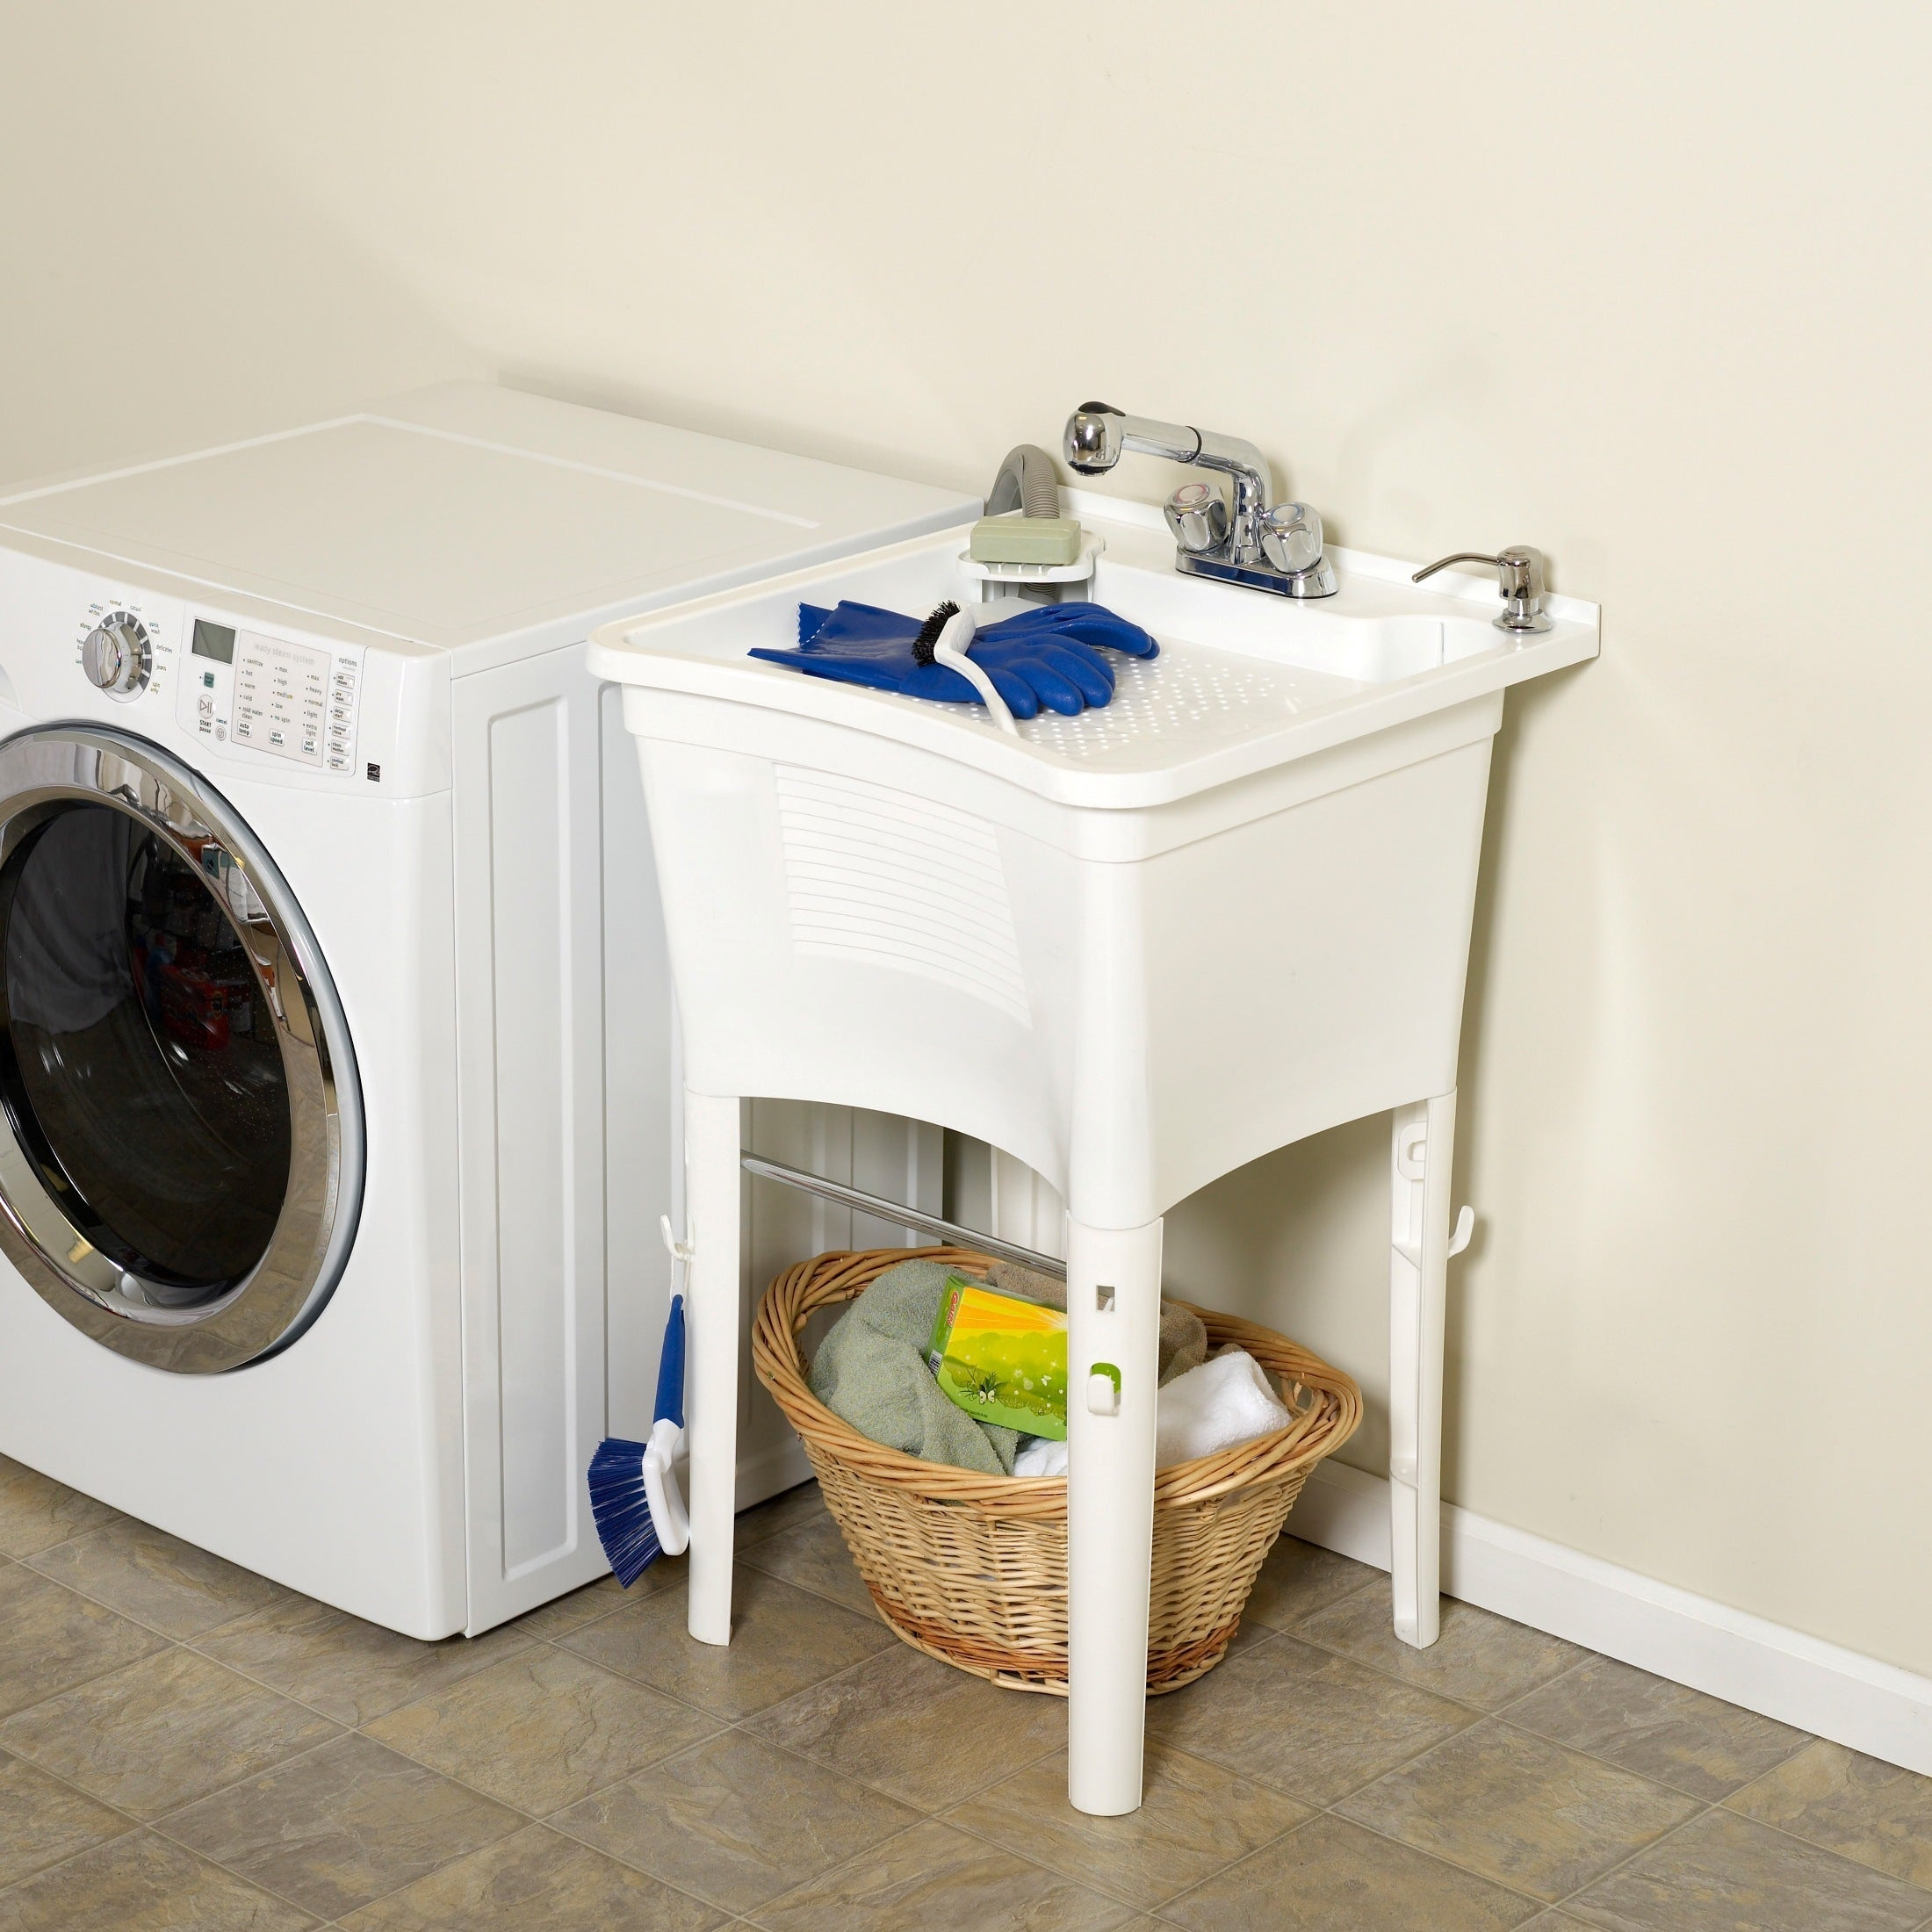 Shop Zenith Ergo Tub Complete, Freestanding Utility Laundry Sink Kit   Free  Shipping Today   Overstock.com   9956462